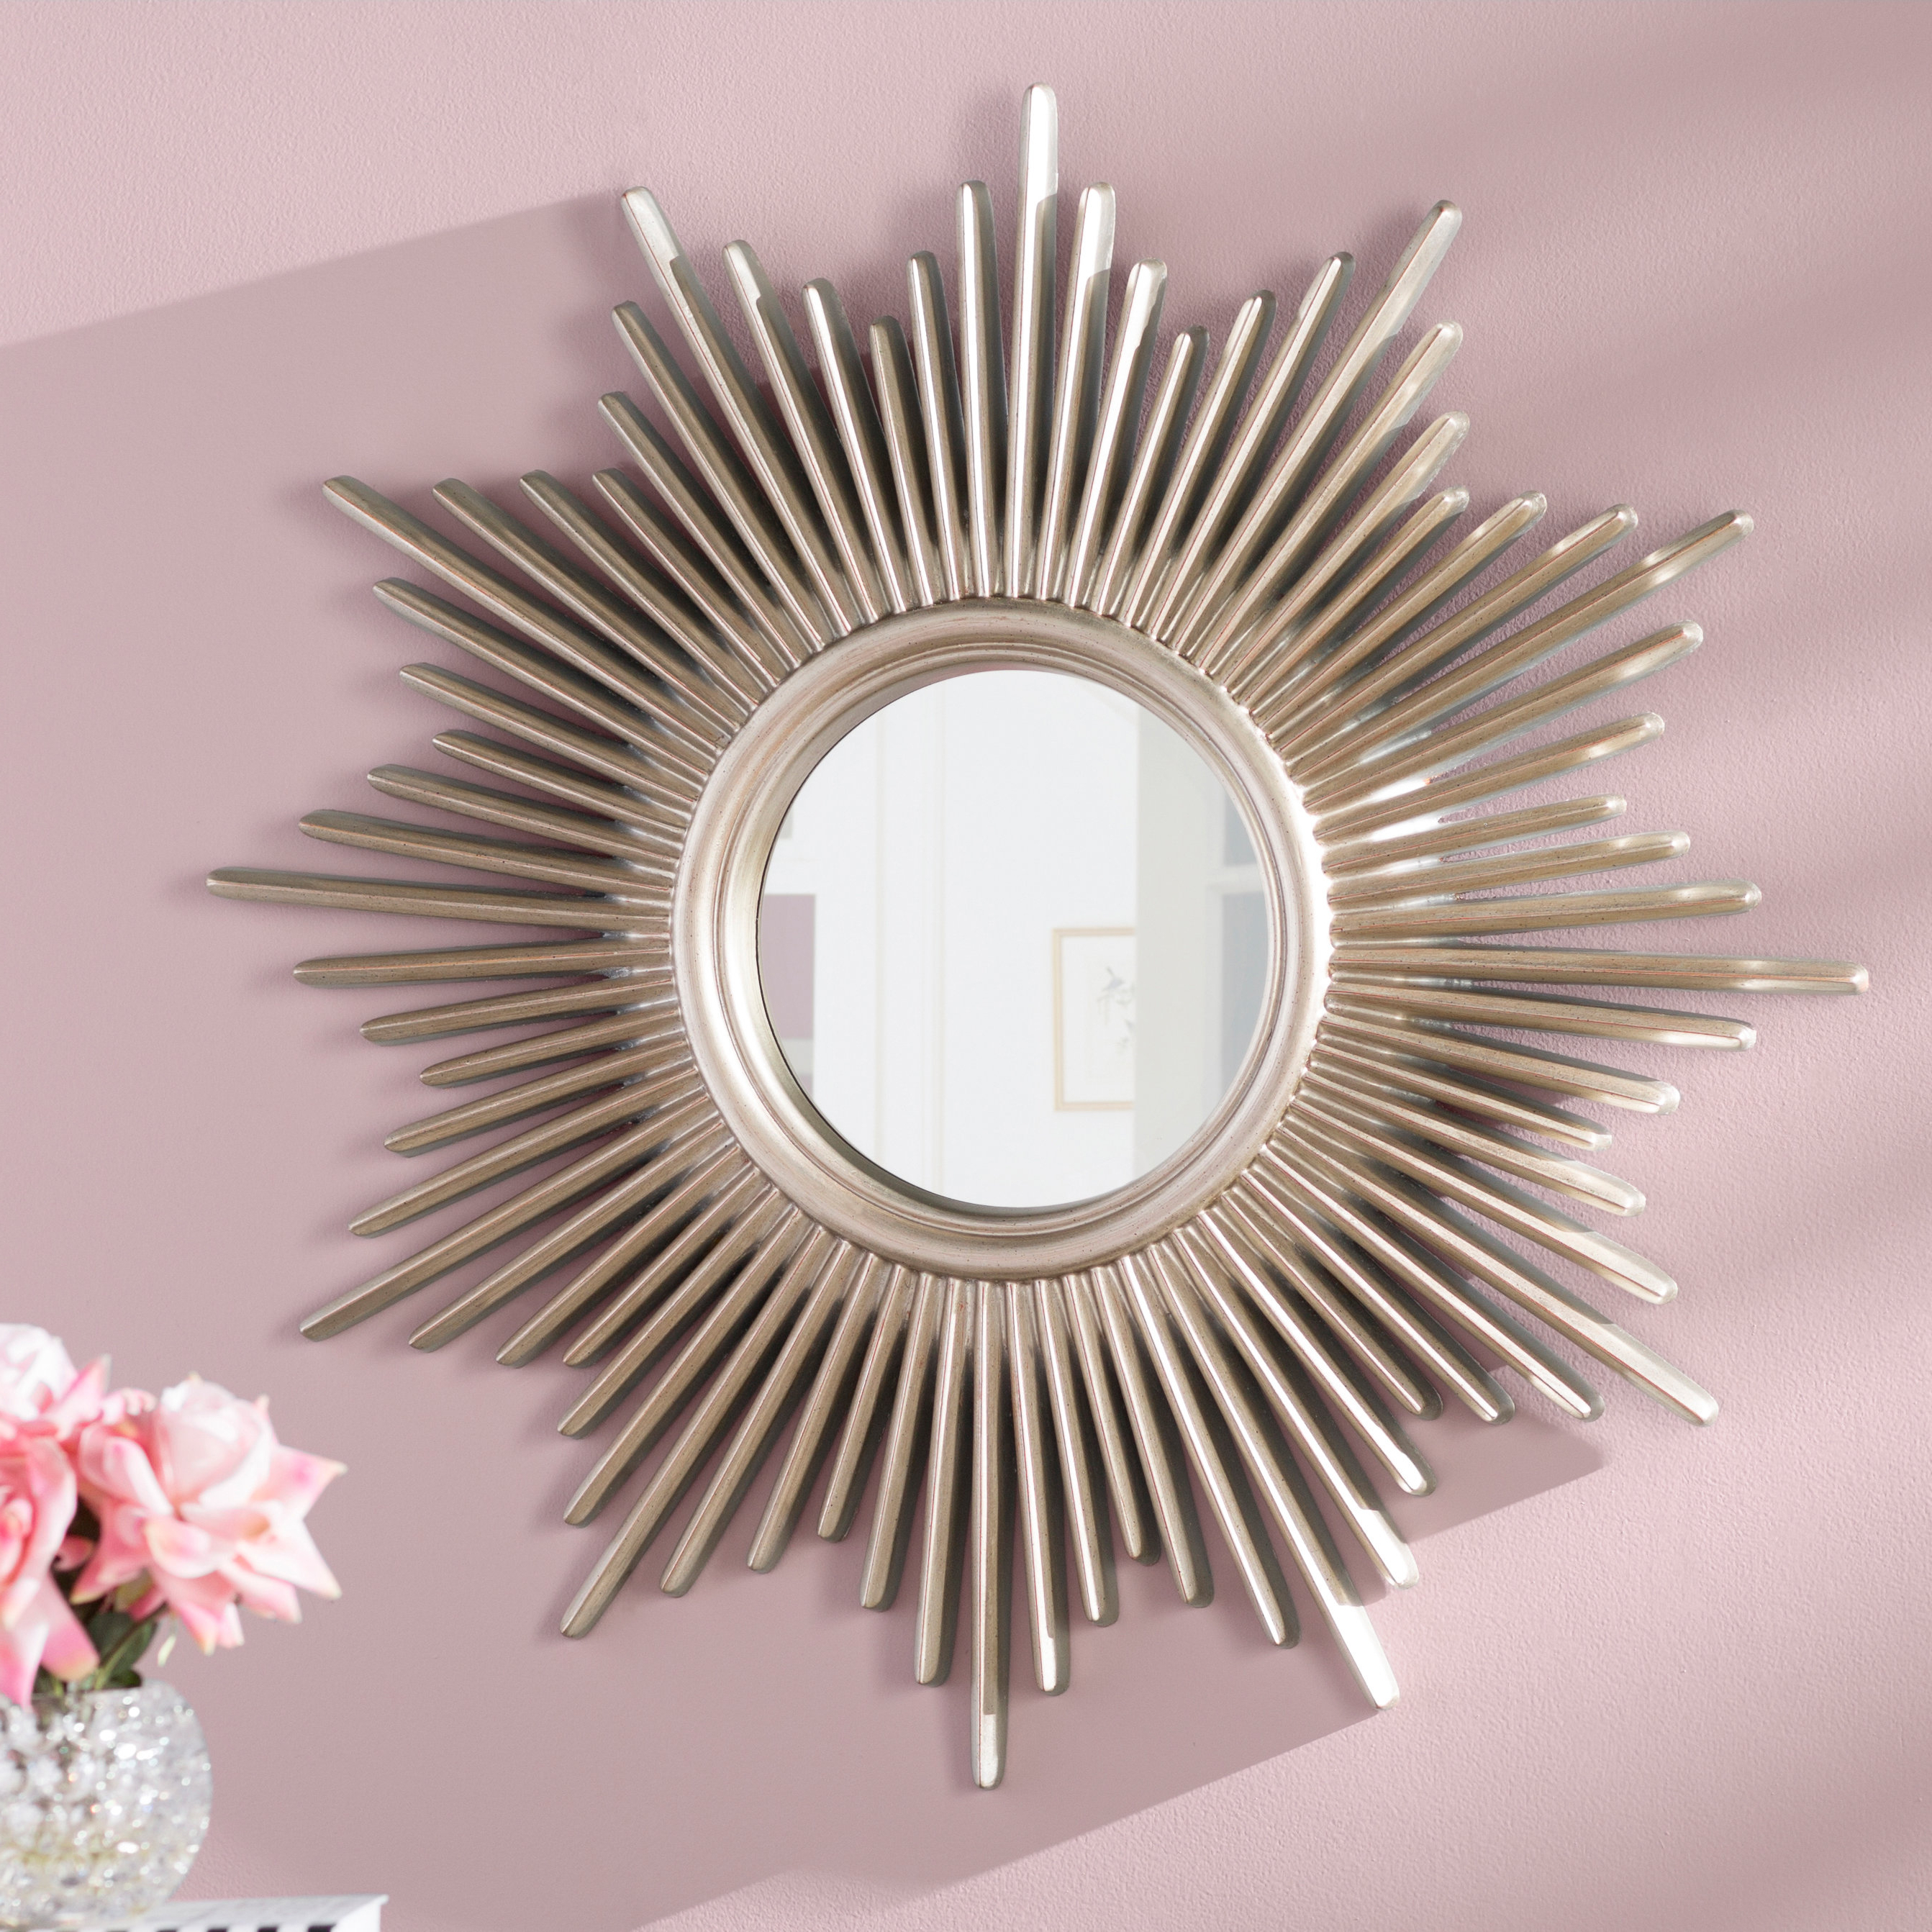 Brylee Traditional Sunburst Mirrors Regarding Well Known Accent Sunburst Mirrors Youll Love Wayfair Look At This (View 19 of 20)